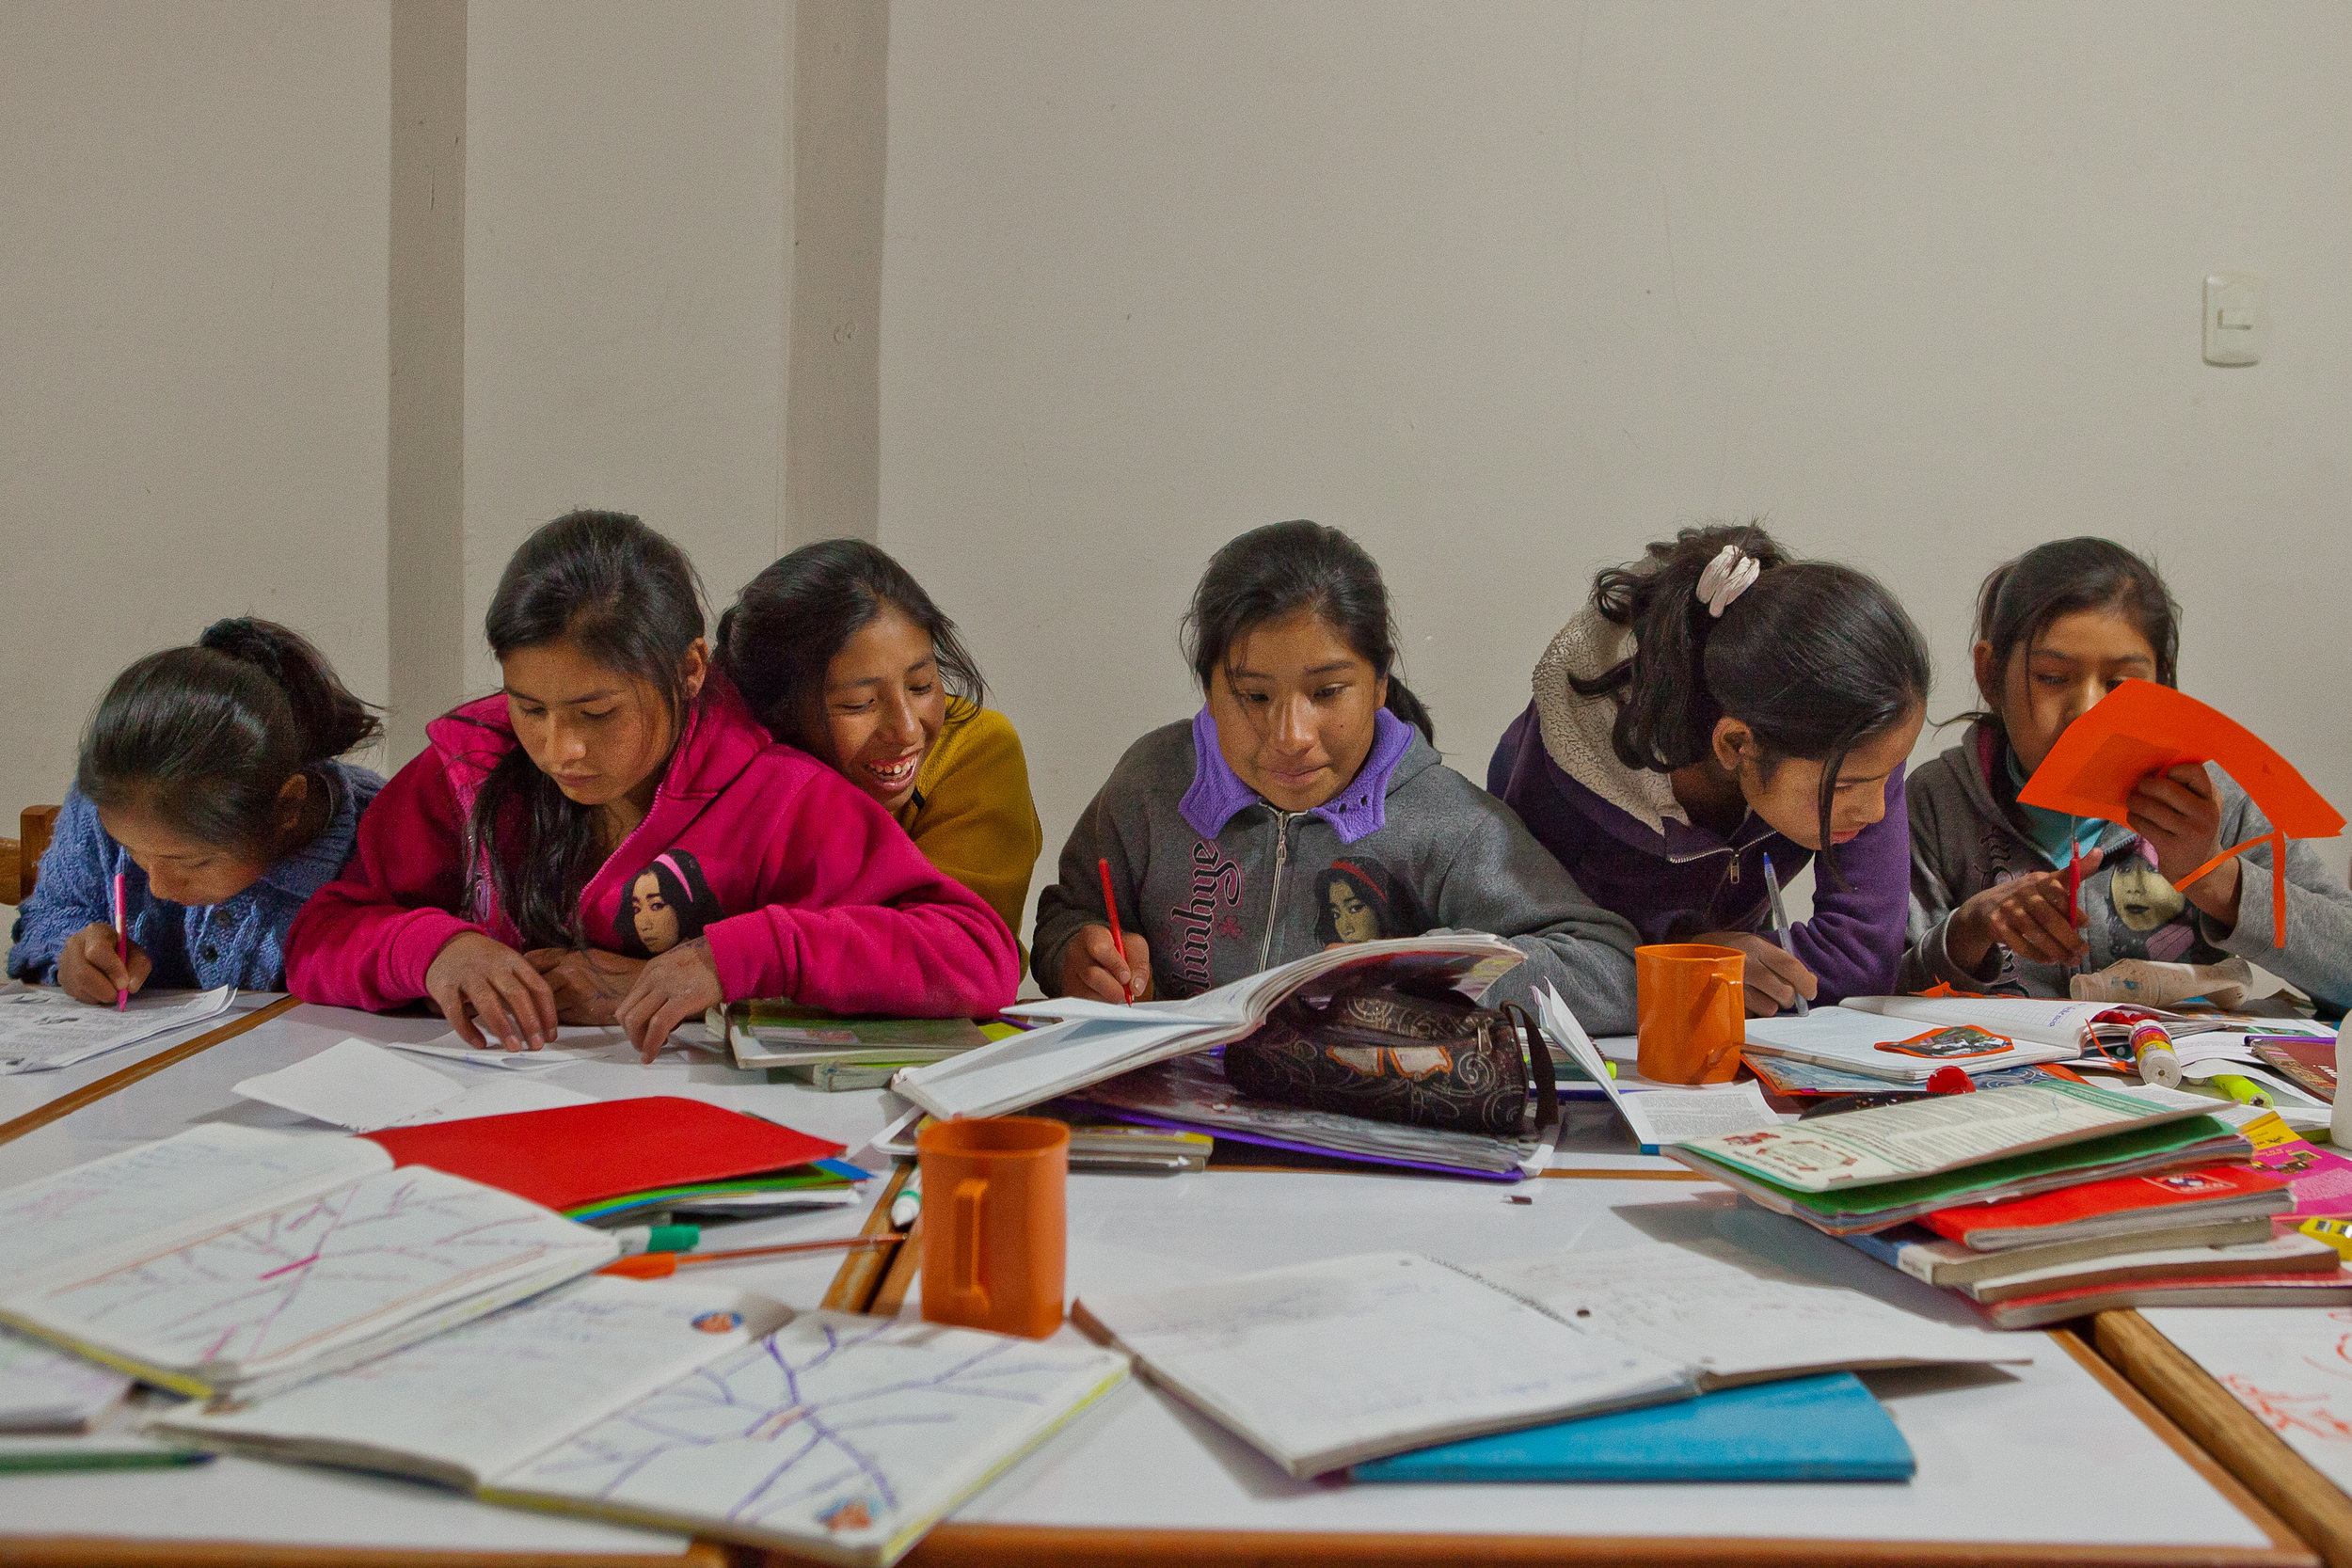 After school each day, the girls gather to work on their homework together. From left, Mariela, Marisol, Nilda, Elizabeth, Nayda, and Flor Nayda work on various homework assignments.